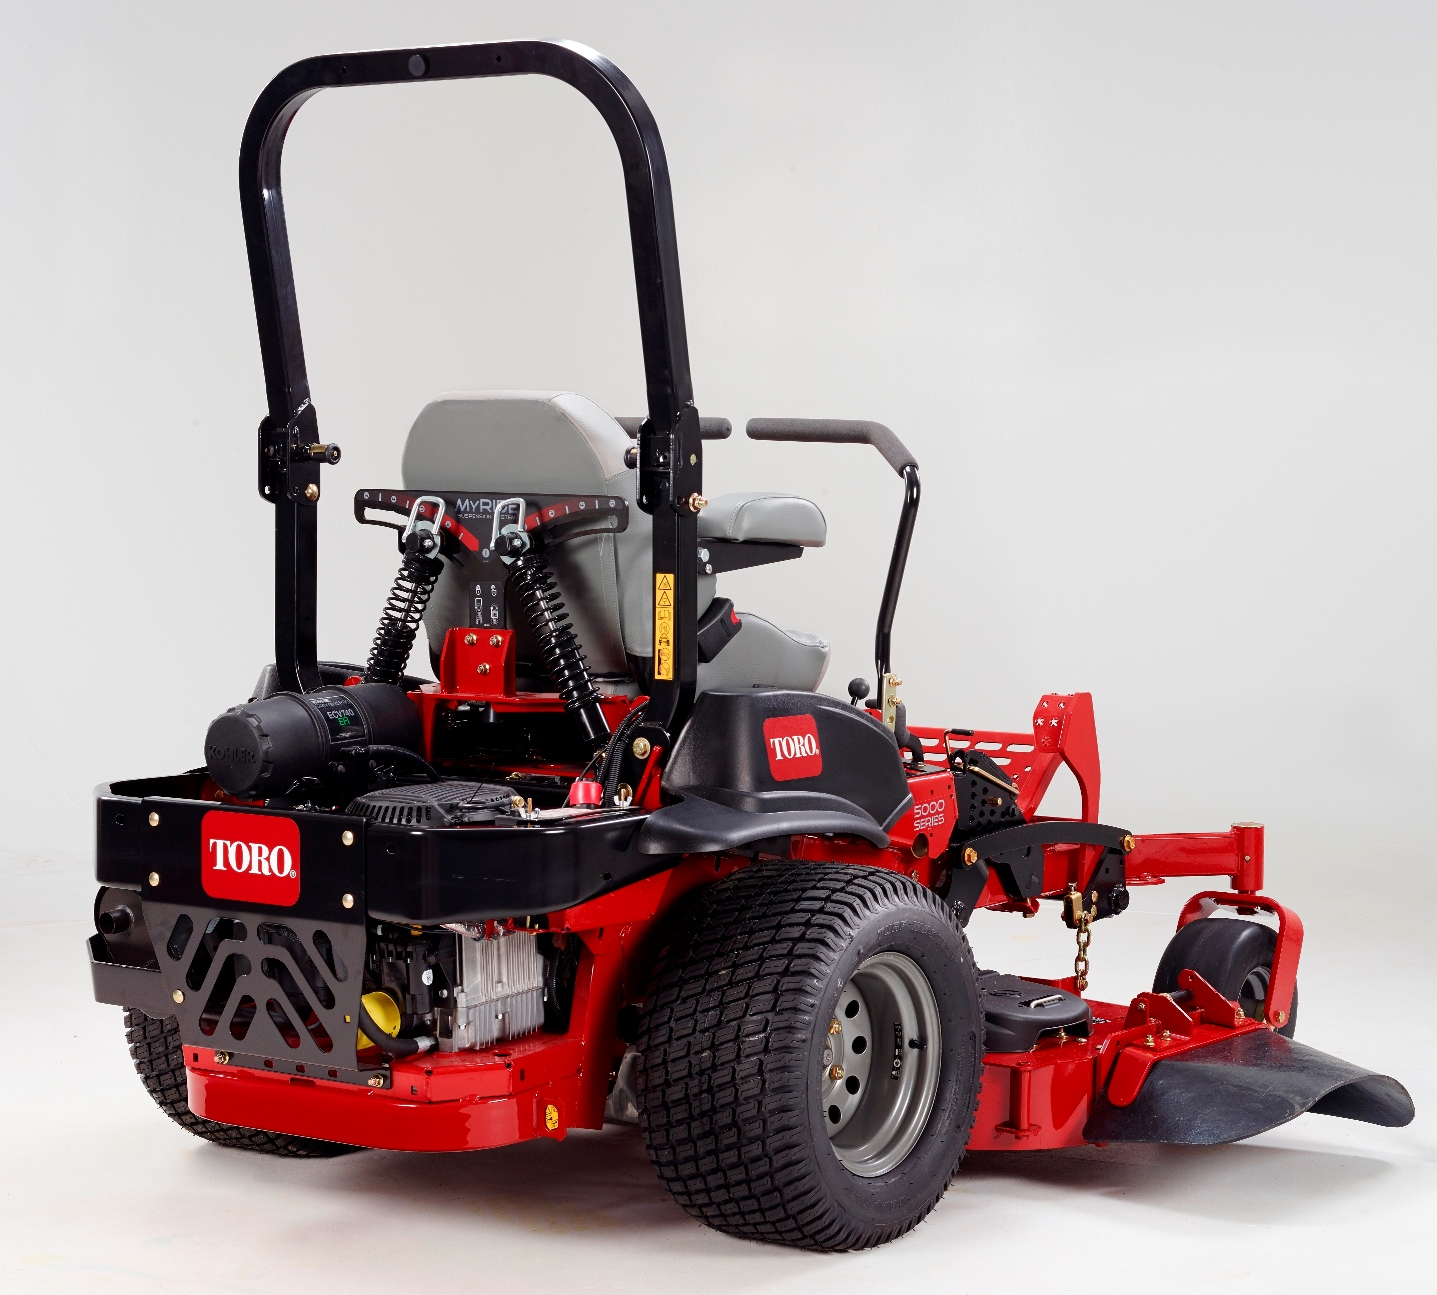 If you spend long hours mowing, you will want to try the Toro MyRIDE suspension system!